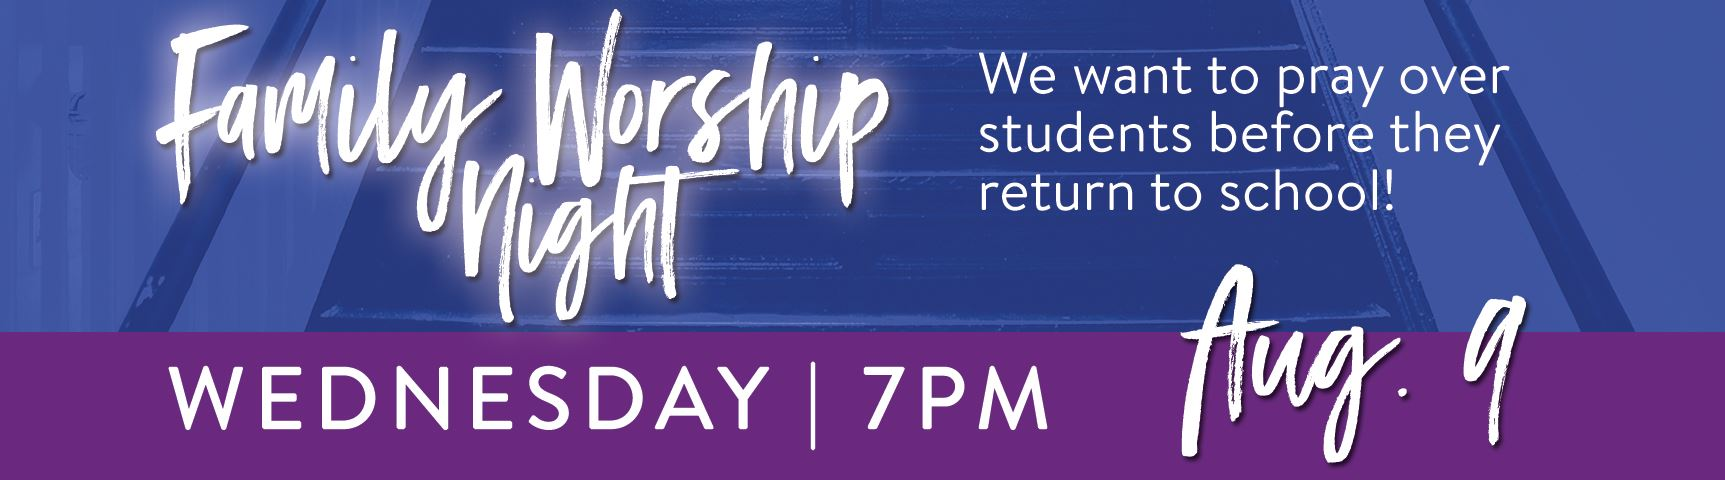 Family Worship Night | Wednesday, August 9, 7pm | We want to pray over students before they return to school!